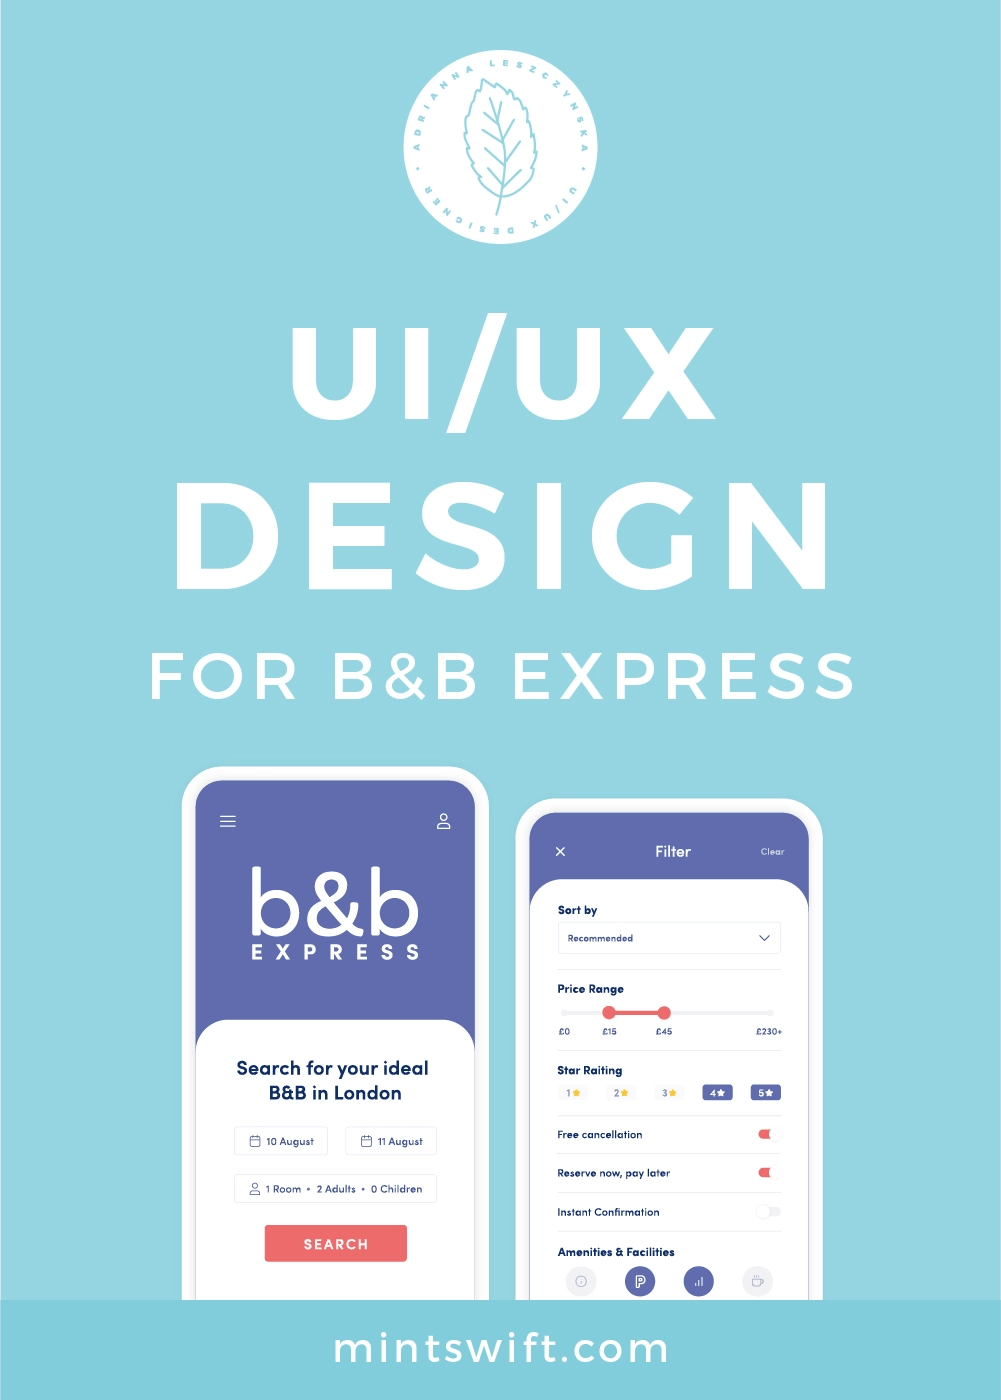 UI/UX Design for B&B Express App